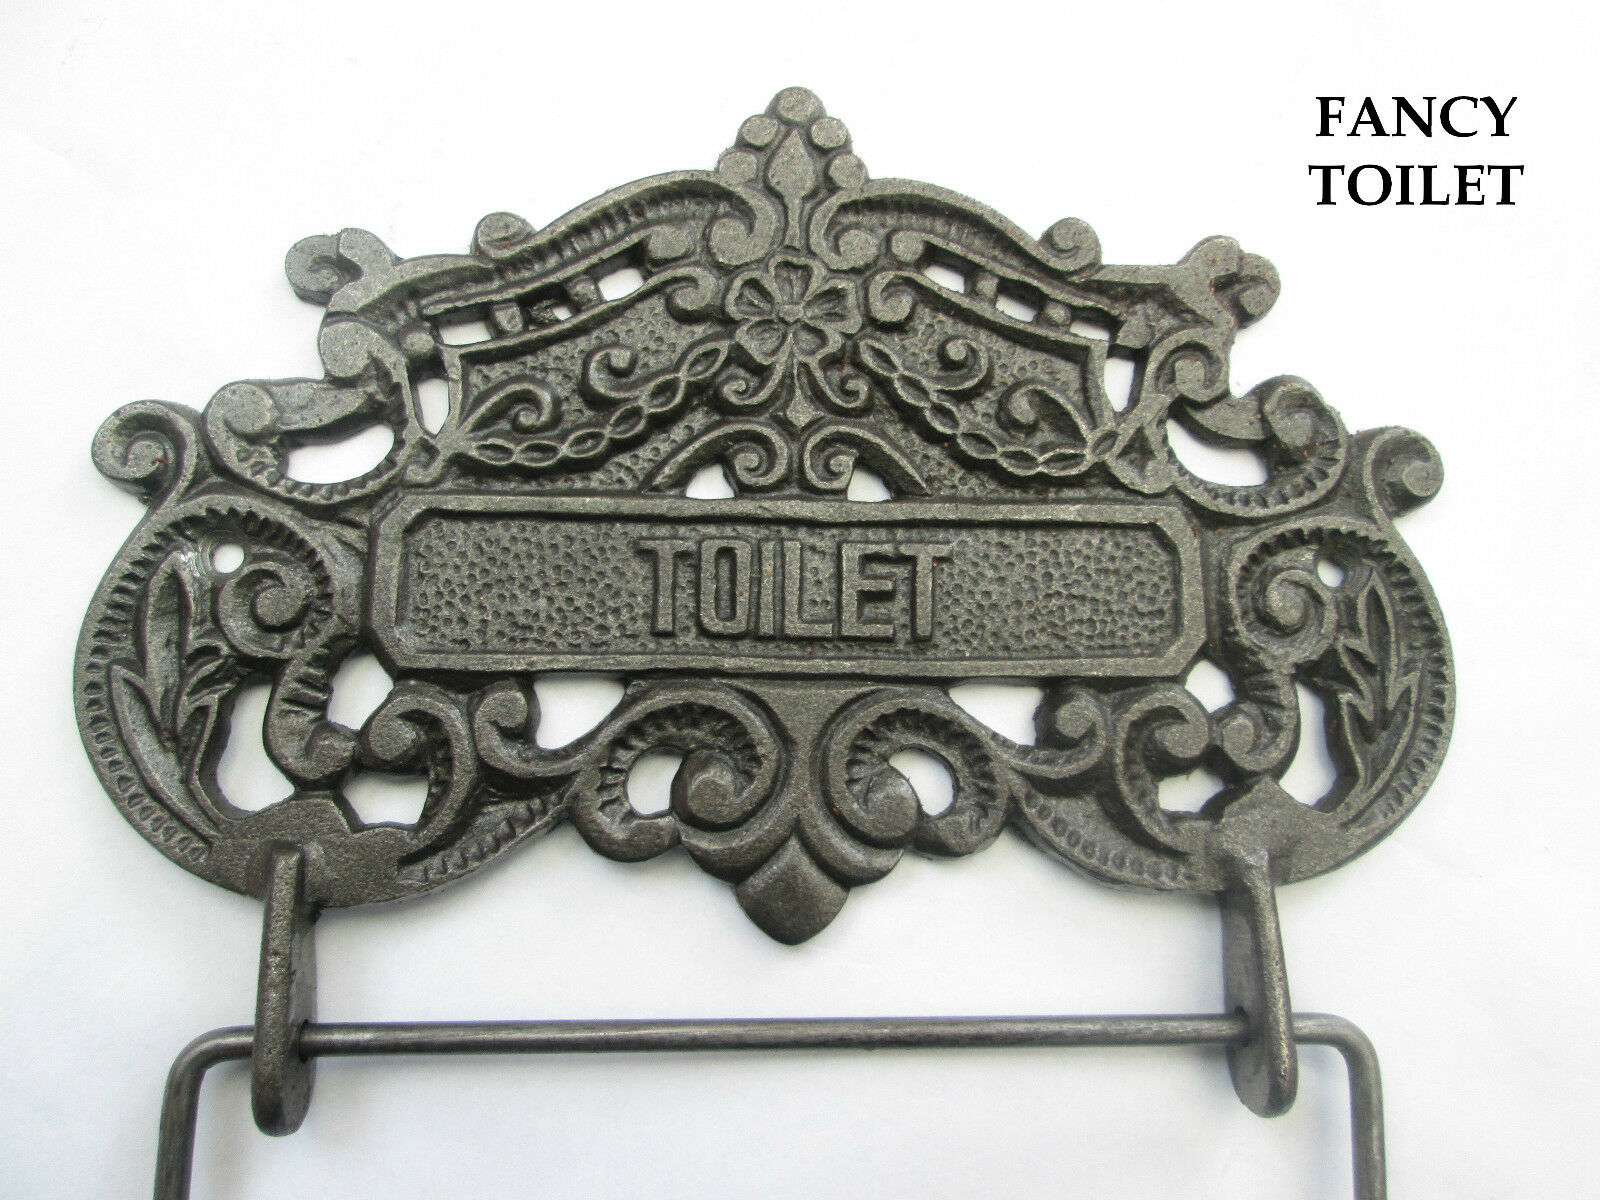 vintage victorian old style period bathroom wc washroom loo toilet roll holder picclick uk. Black Bedroom Furniture Sets. Home Design Ideas